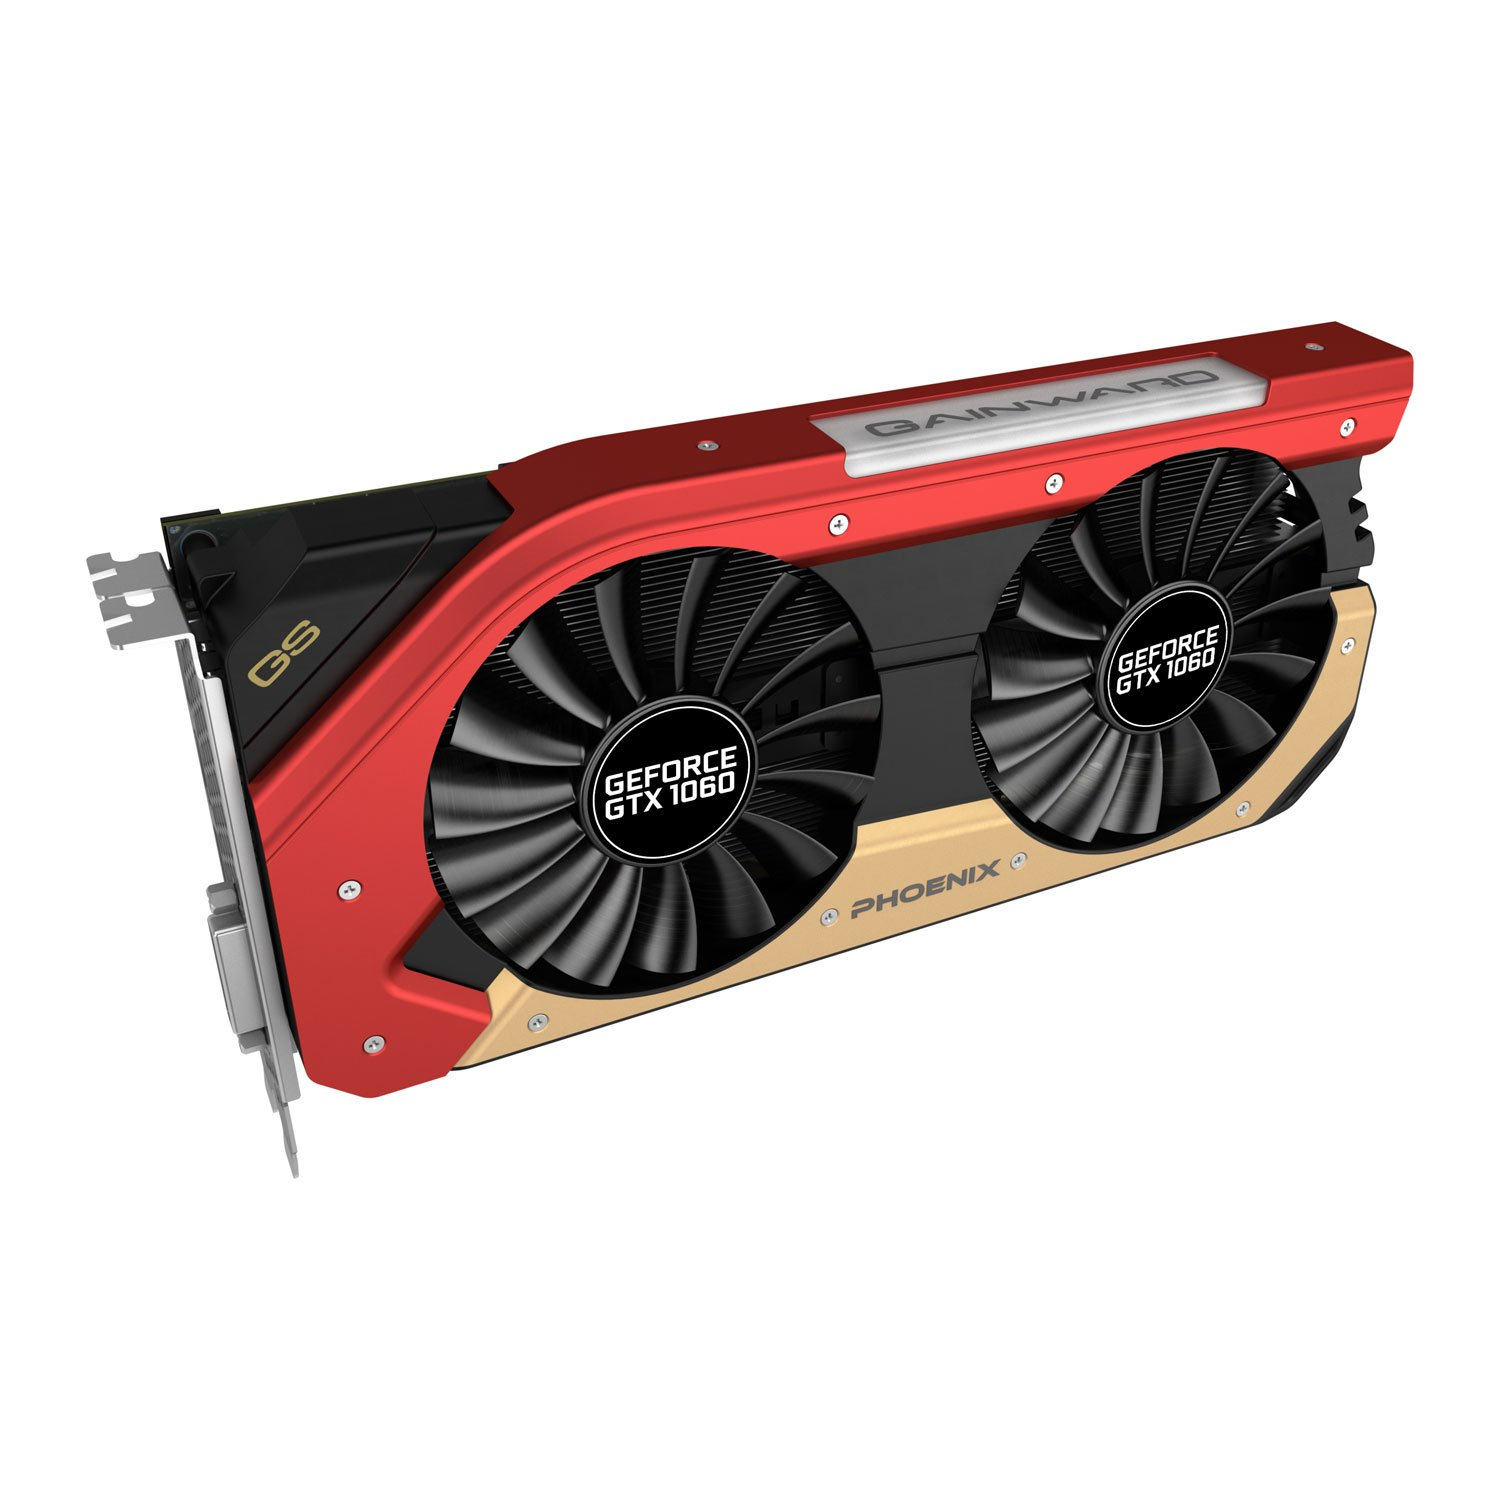 14 Best GTX 1060 cards as of 2019 - Slant